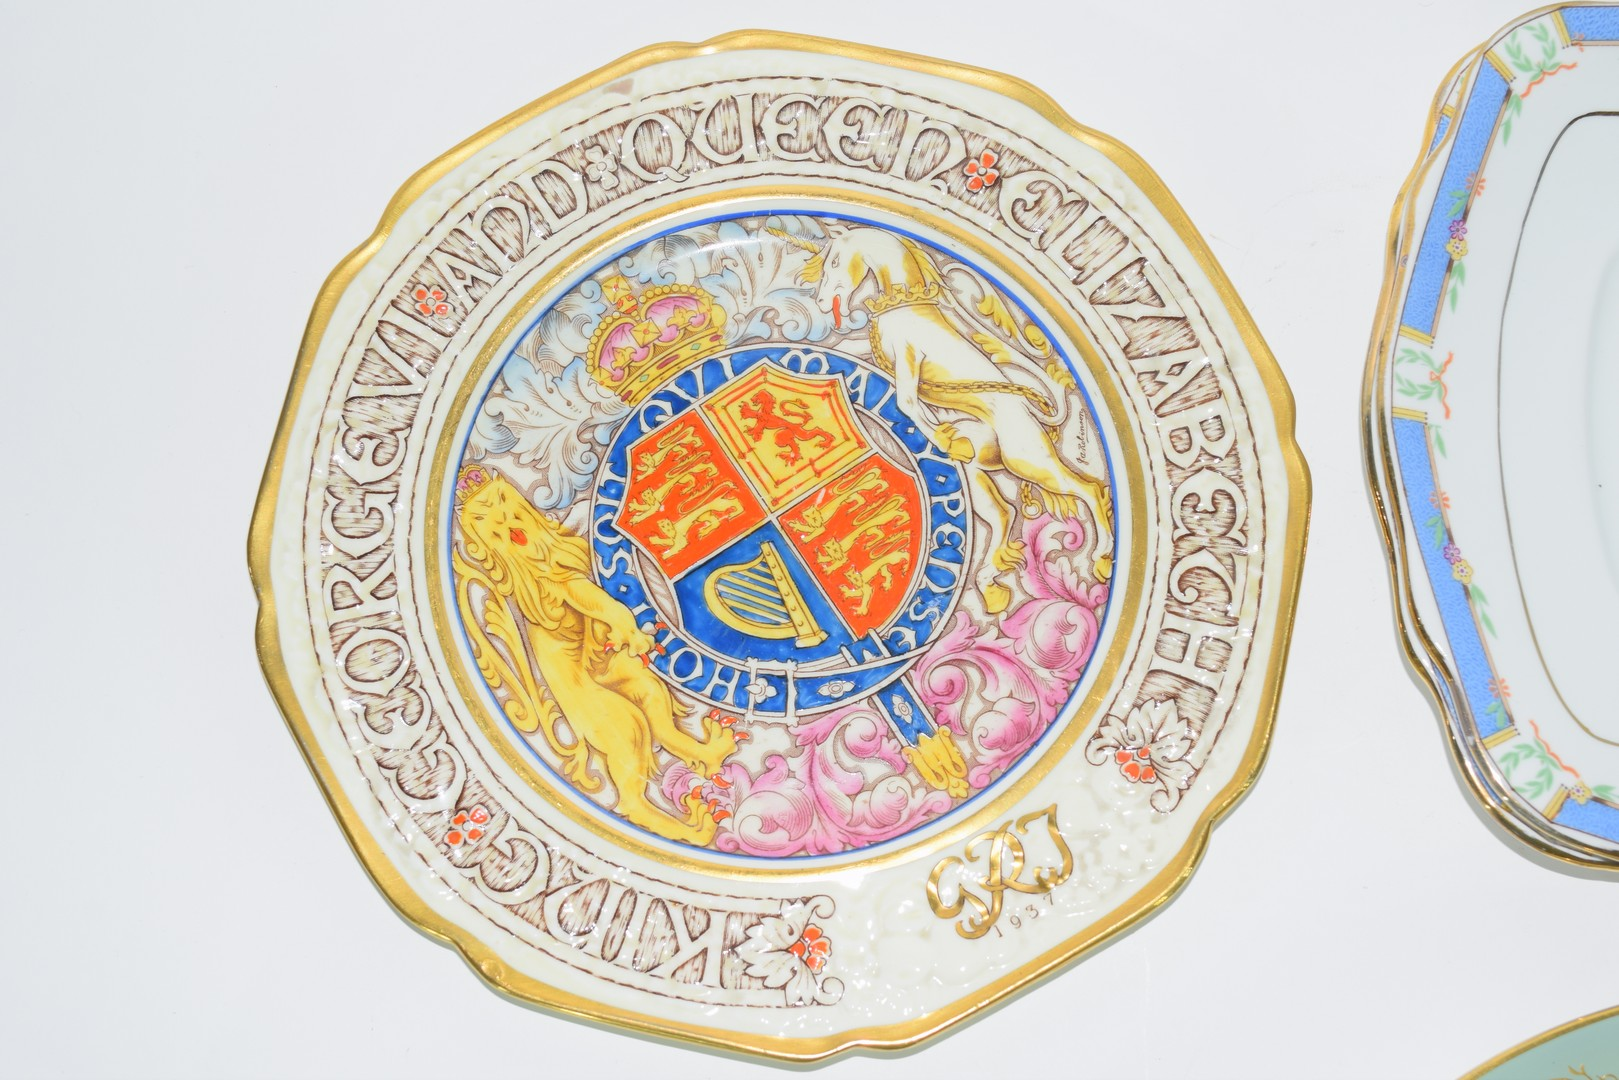 Group of decorative plates including a Paragon commemorative plate - Image 4 of 7